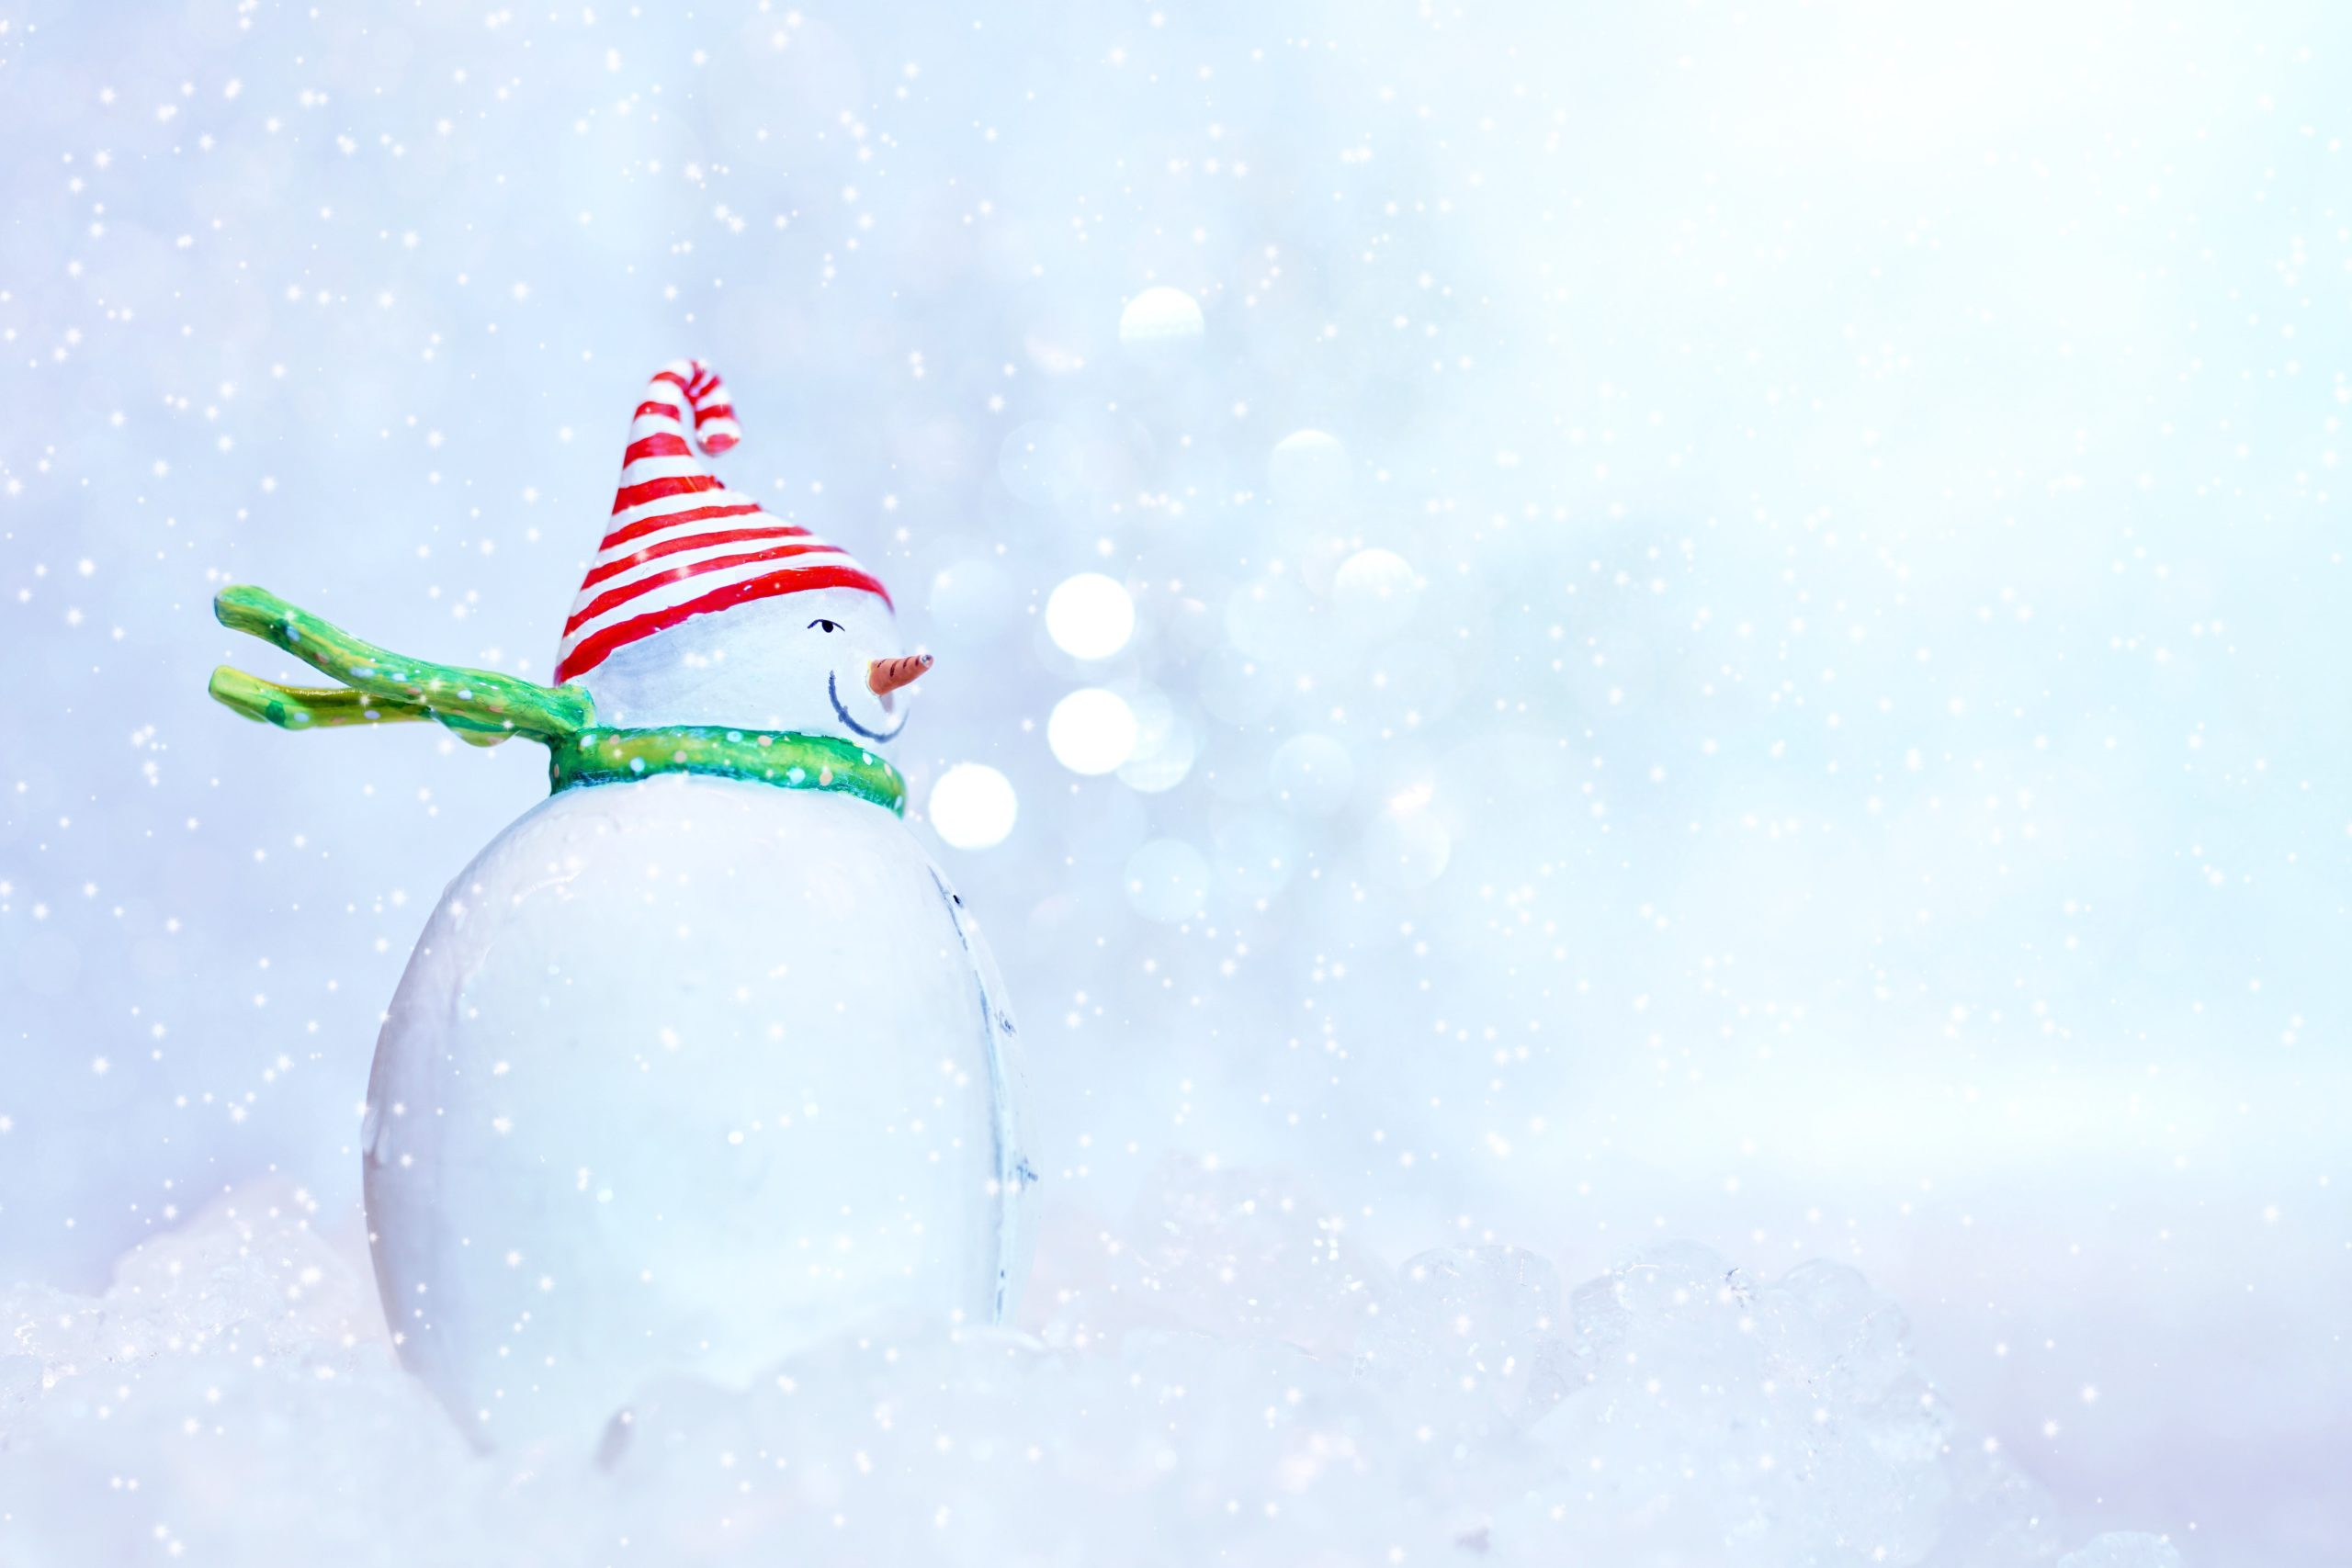 Snowman with red hat and green scarf